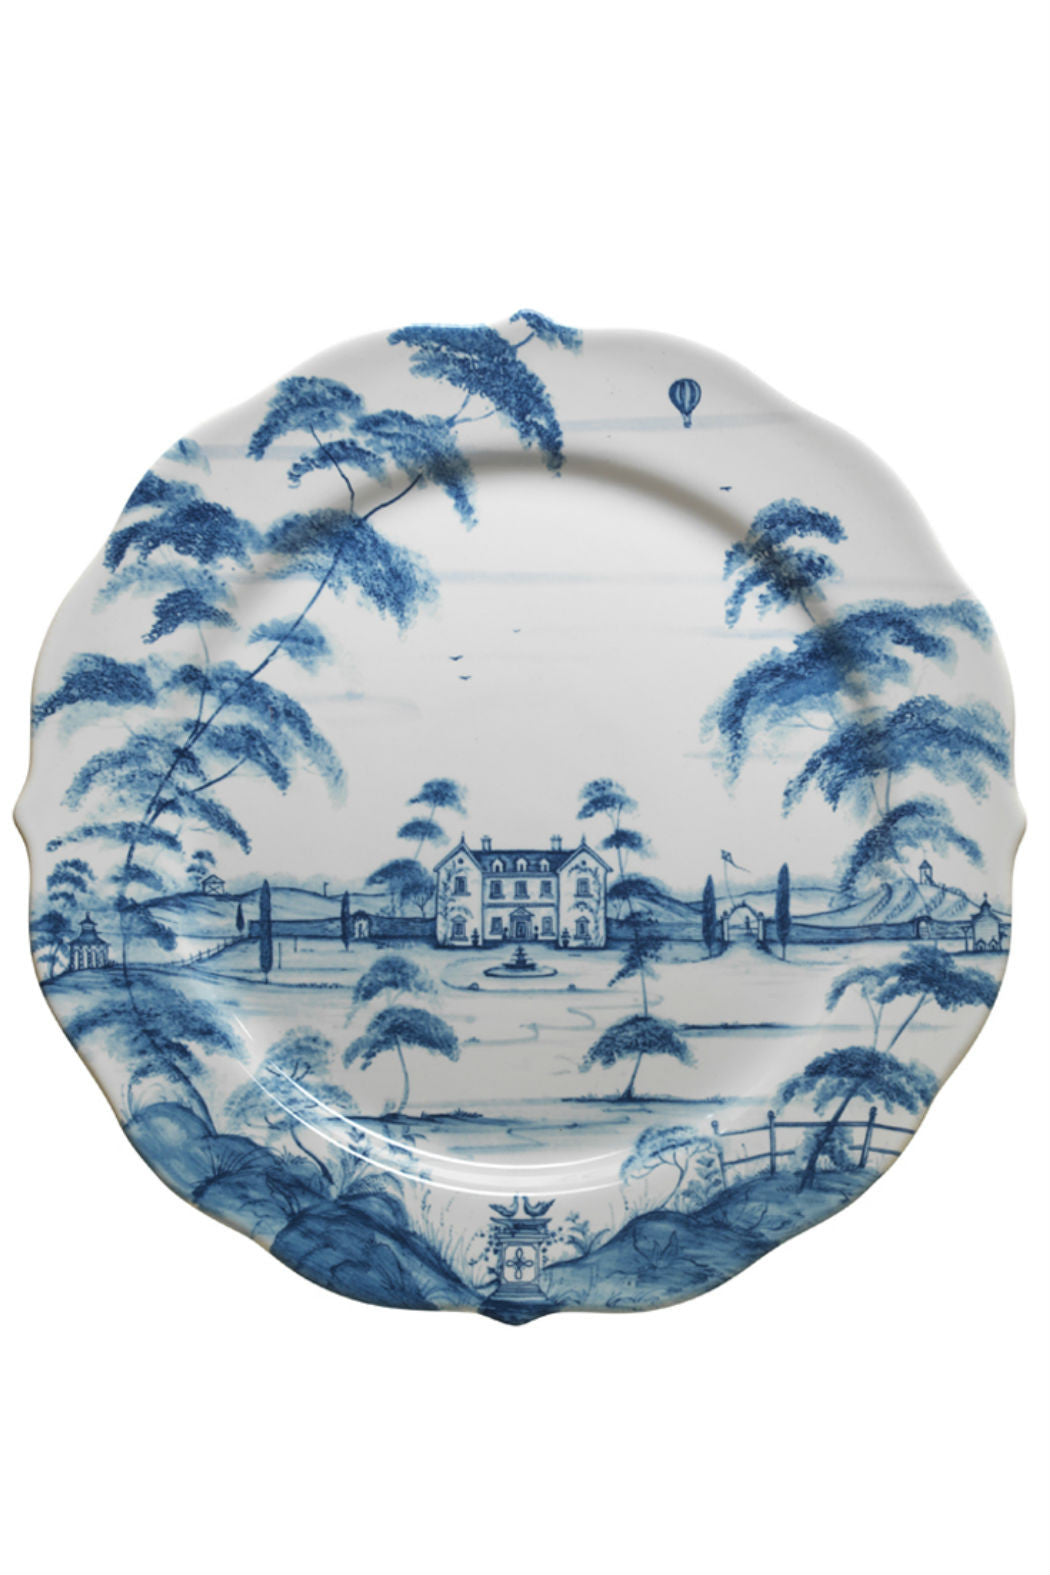 Juliska Country Estate Delft Blue Charger Plate - New Orientation